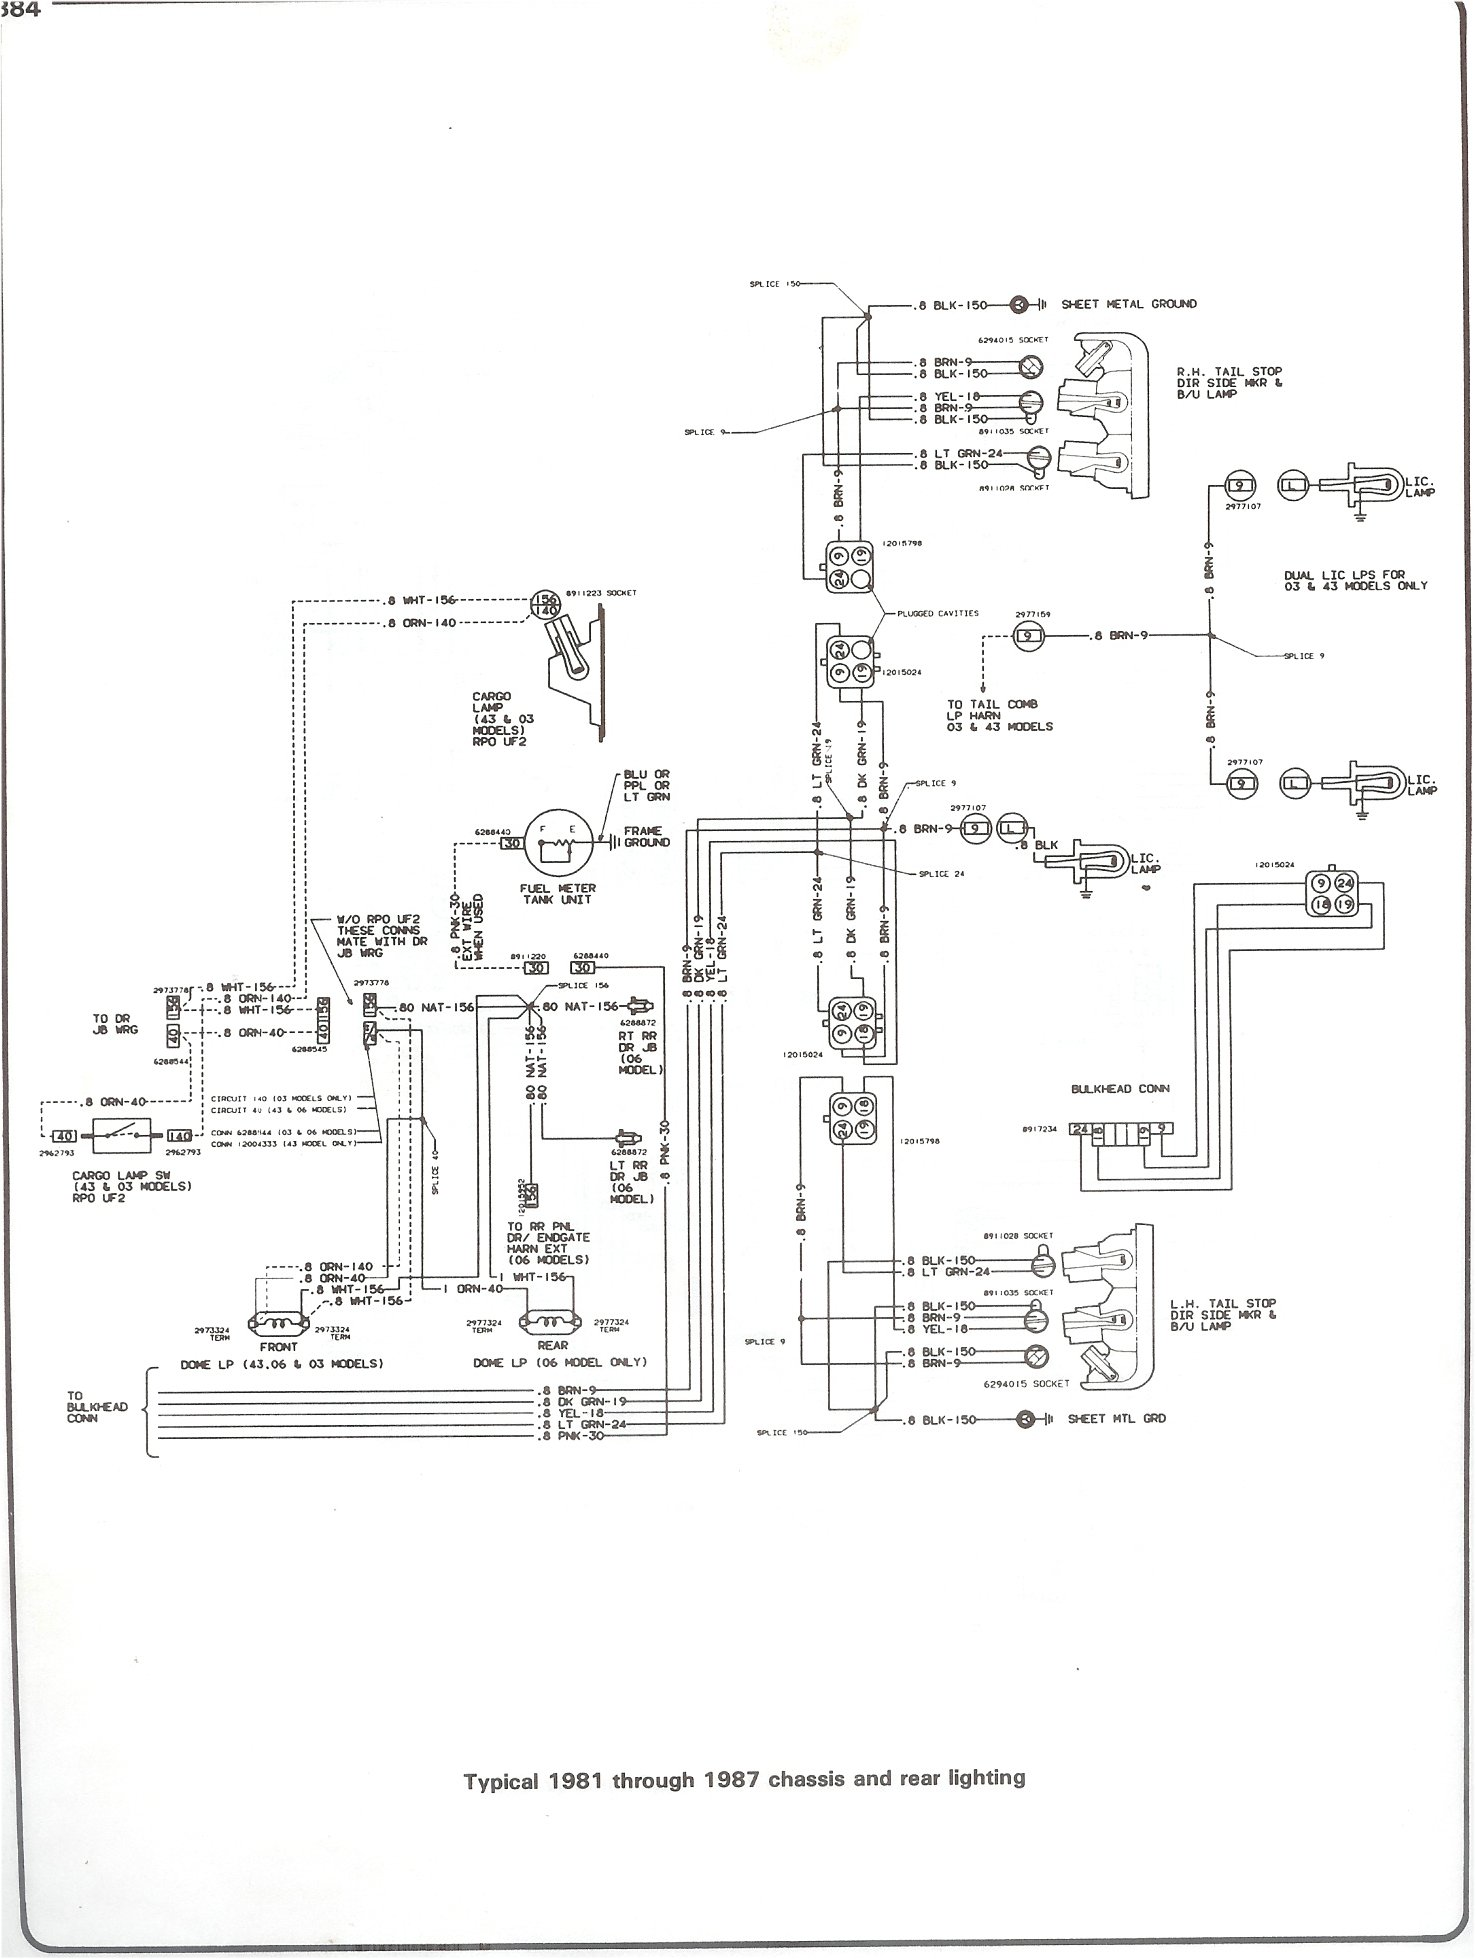 hight resolution of complete 73 87 wiring diagrams 86 suburban stereo wiring diagram 81 87 chassis and rear lighting